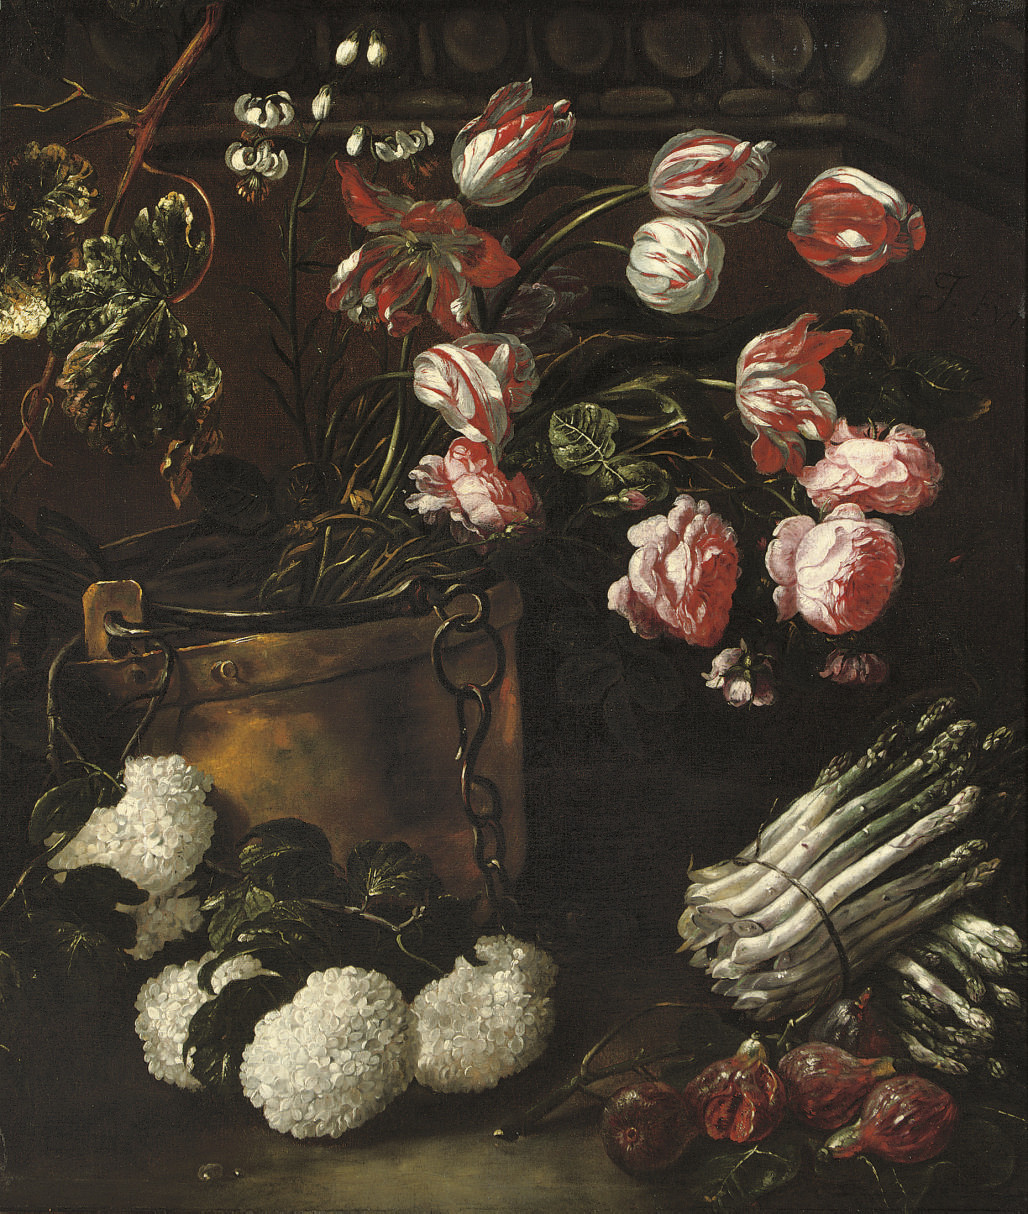 Tulips, roses and other flowers in a copper bucket with asparagus and figs